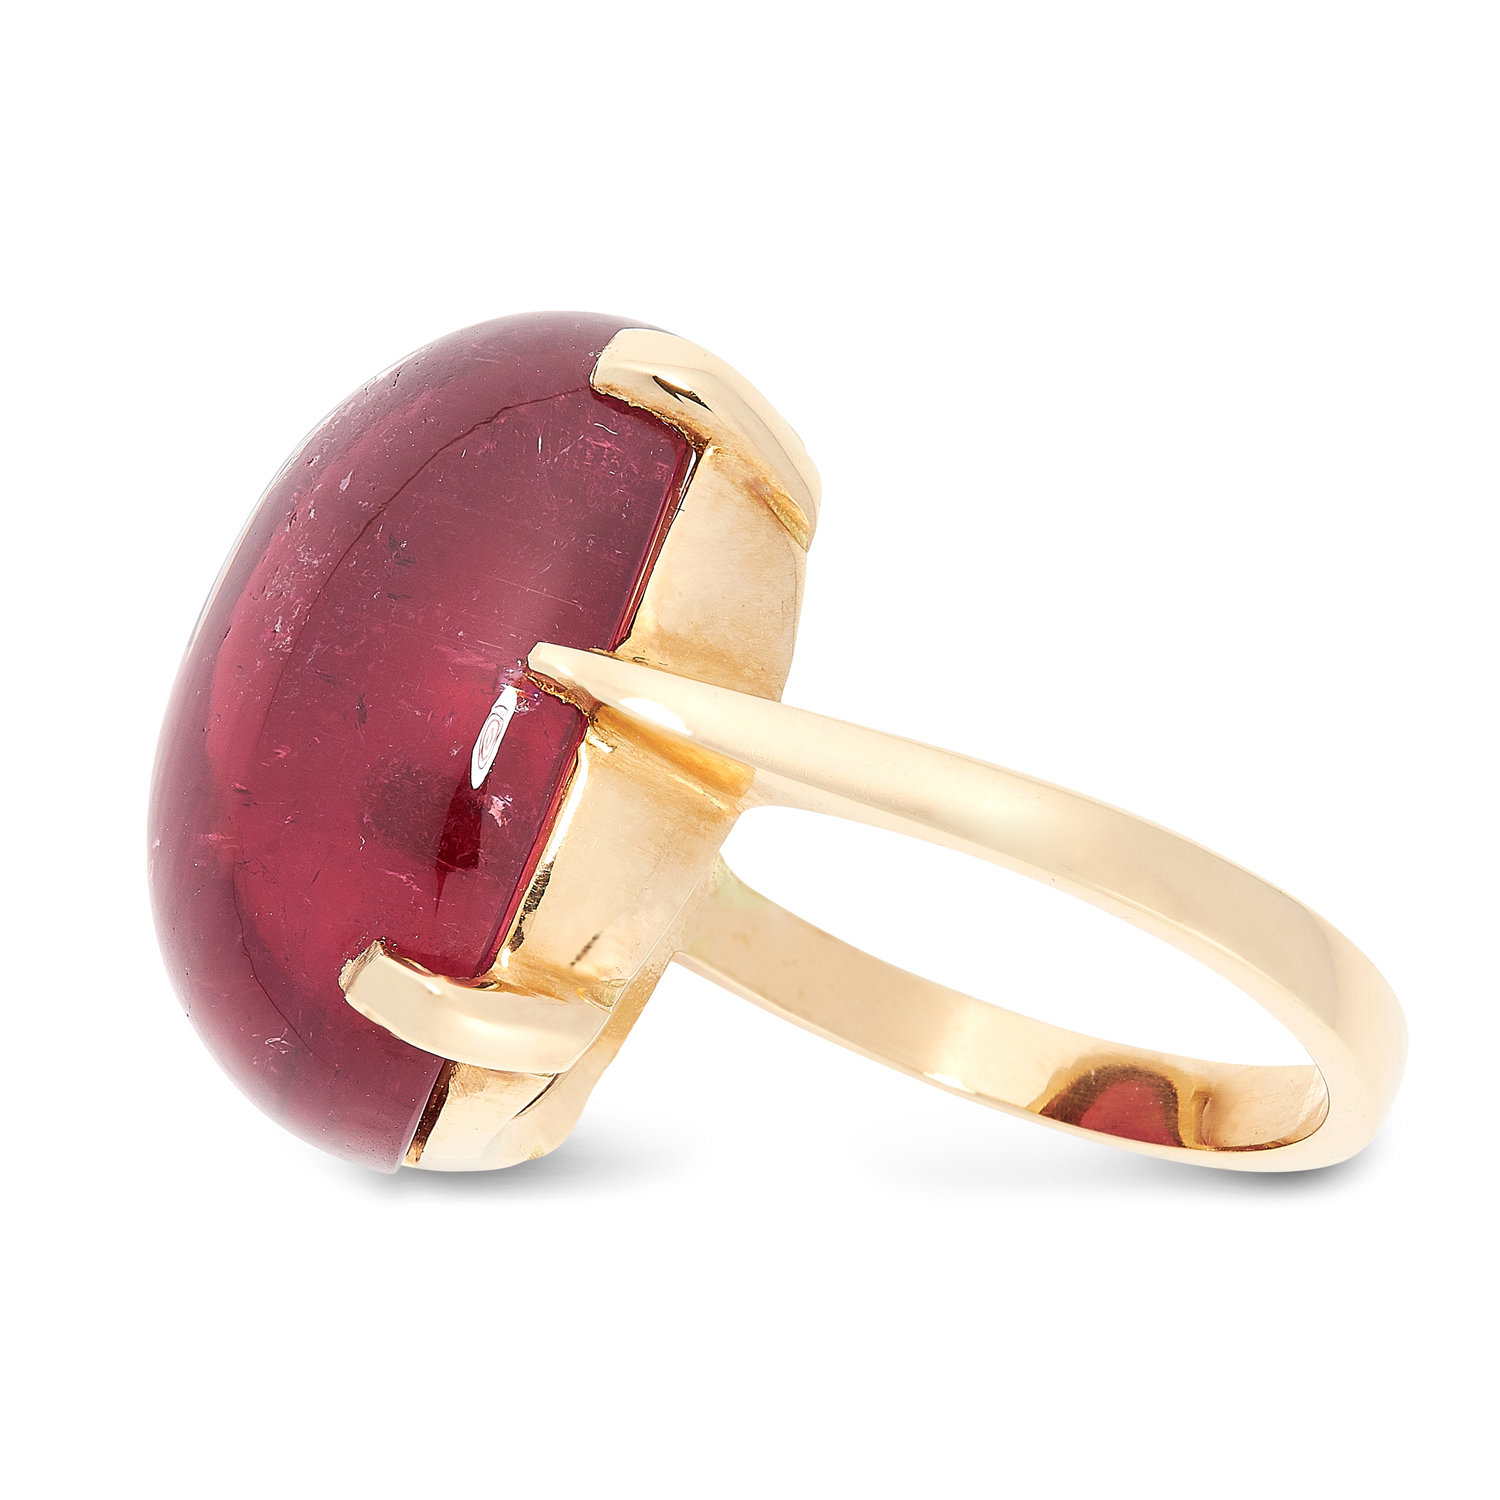 A PINK TOURMALINE DRESS RING in 18ct yellow gold, set with an oval cabochon pink tourmaline of 27.80 - Image 2 of 2